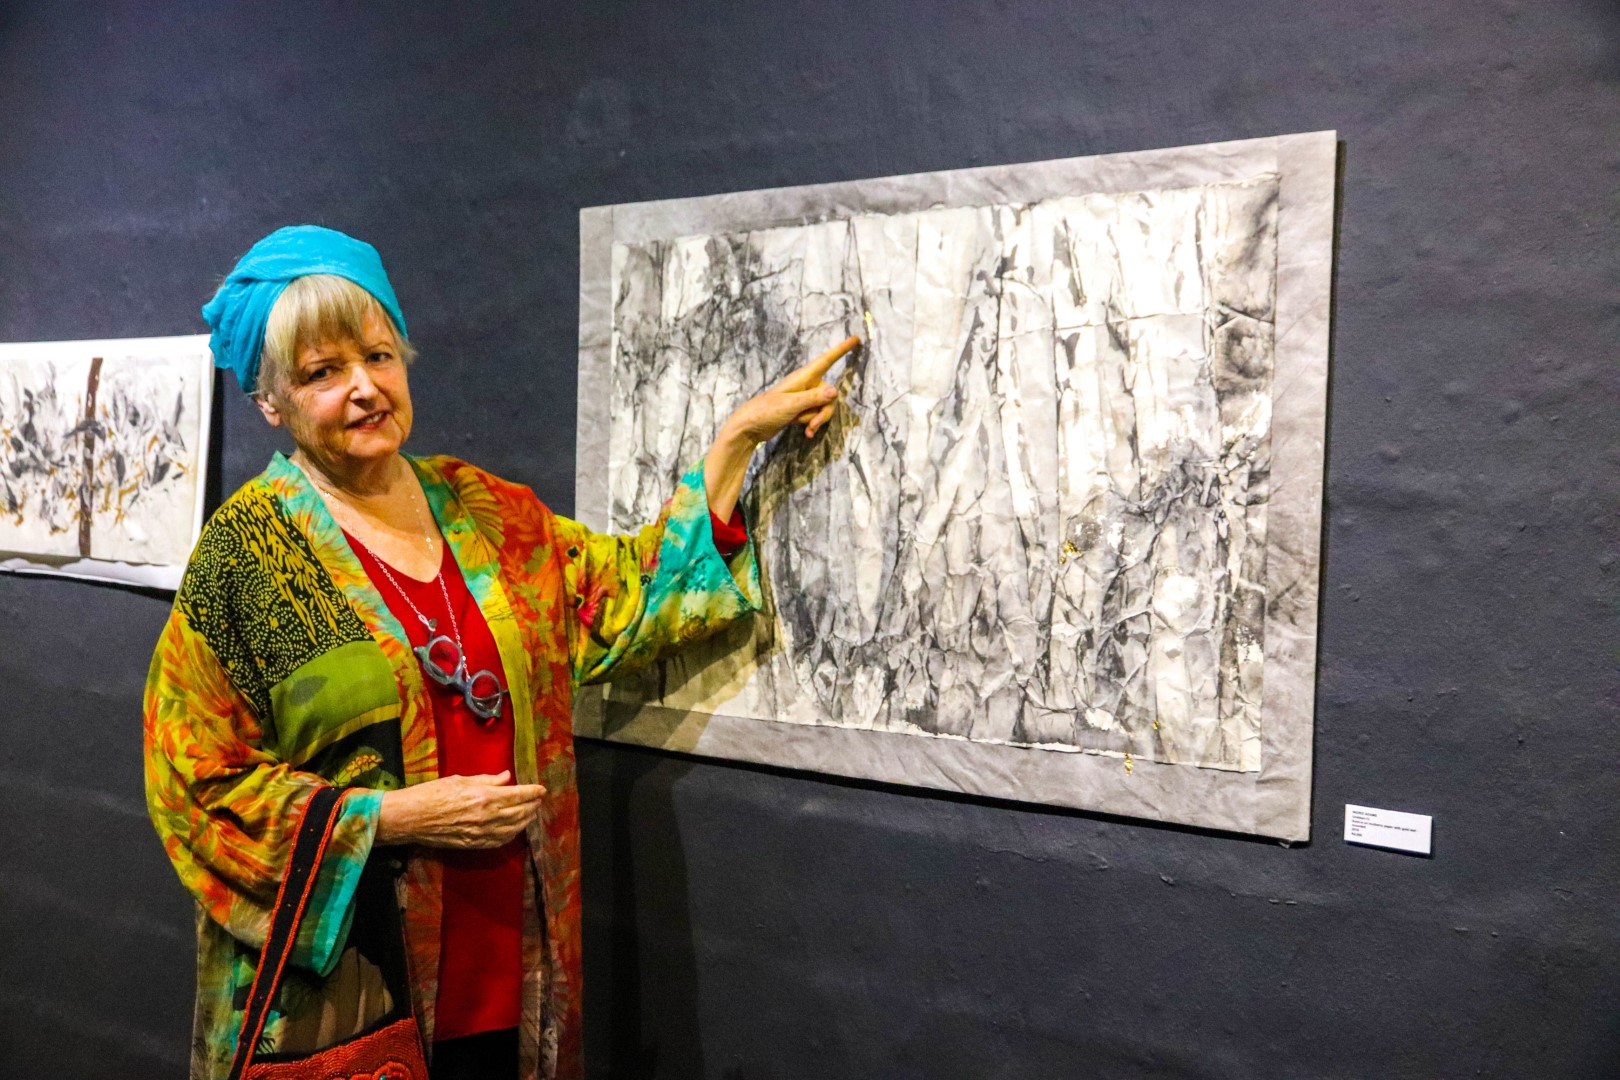 Masters Student Showcases First Solo Exhibition